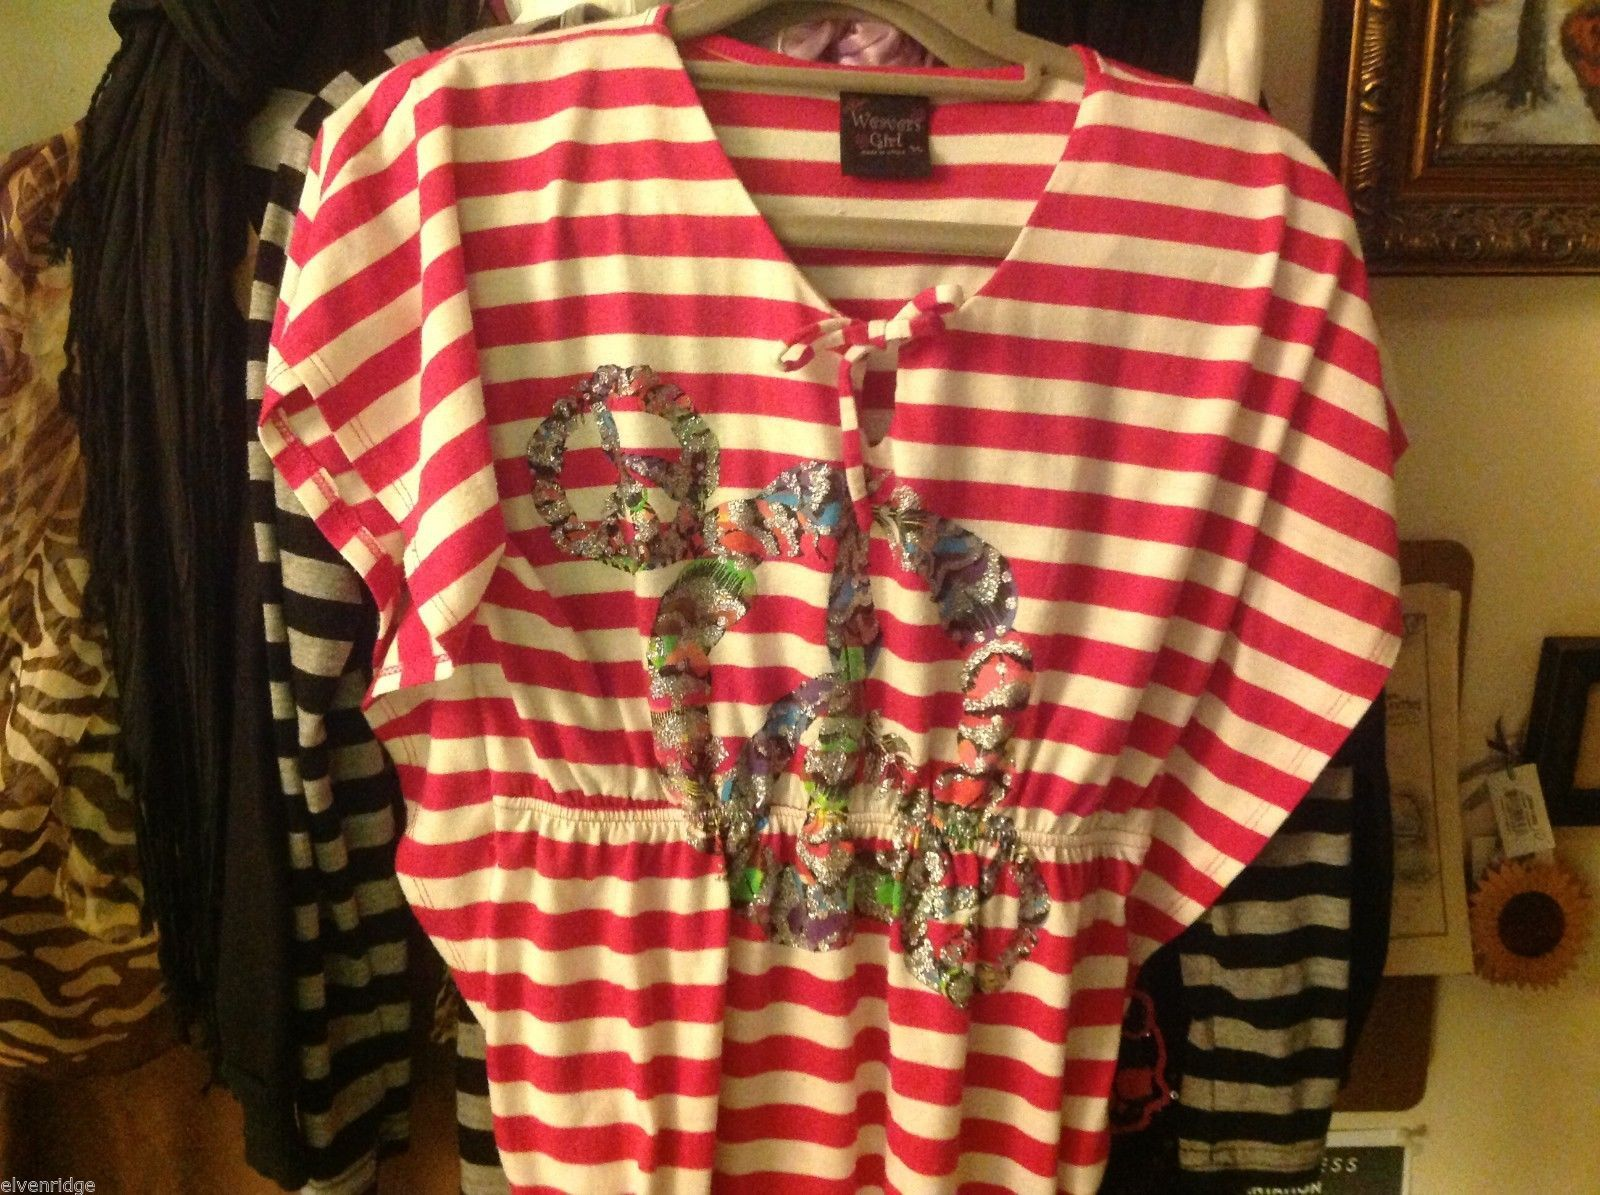 Cute candy cane striped girls top Weavers Girl w glitter peace feathers